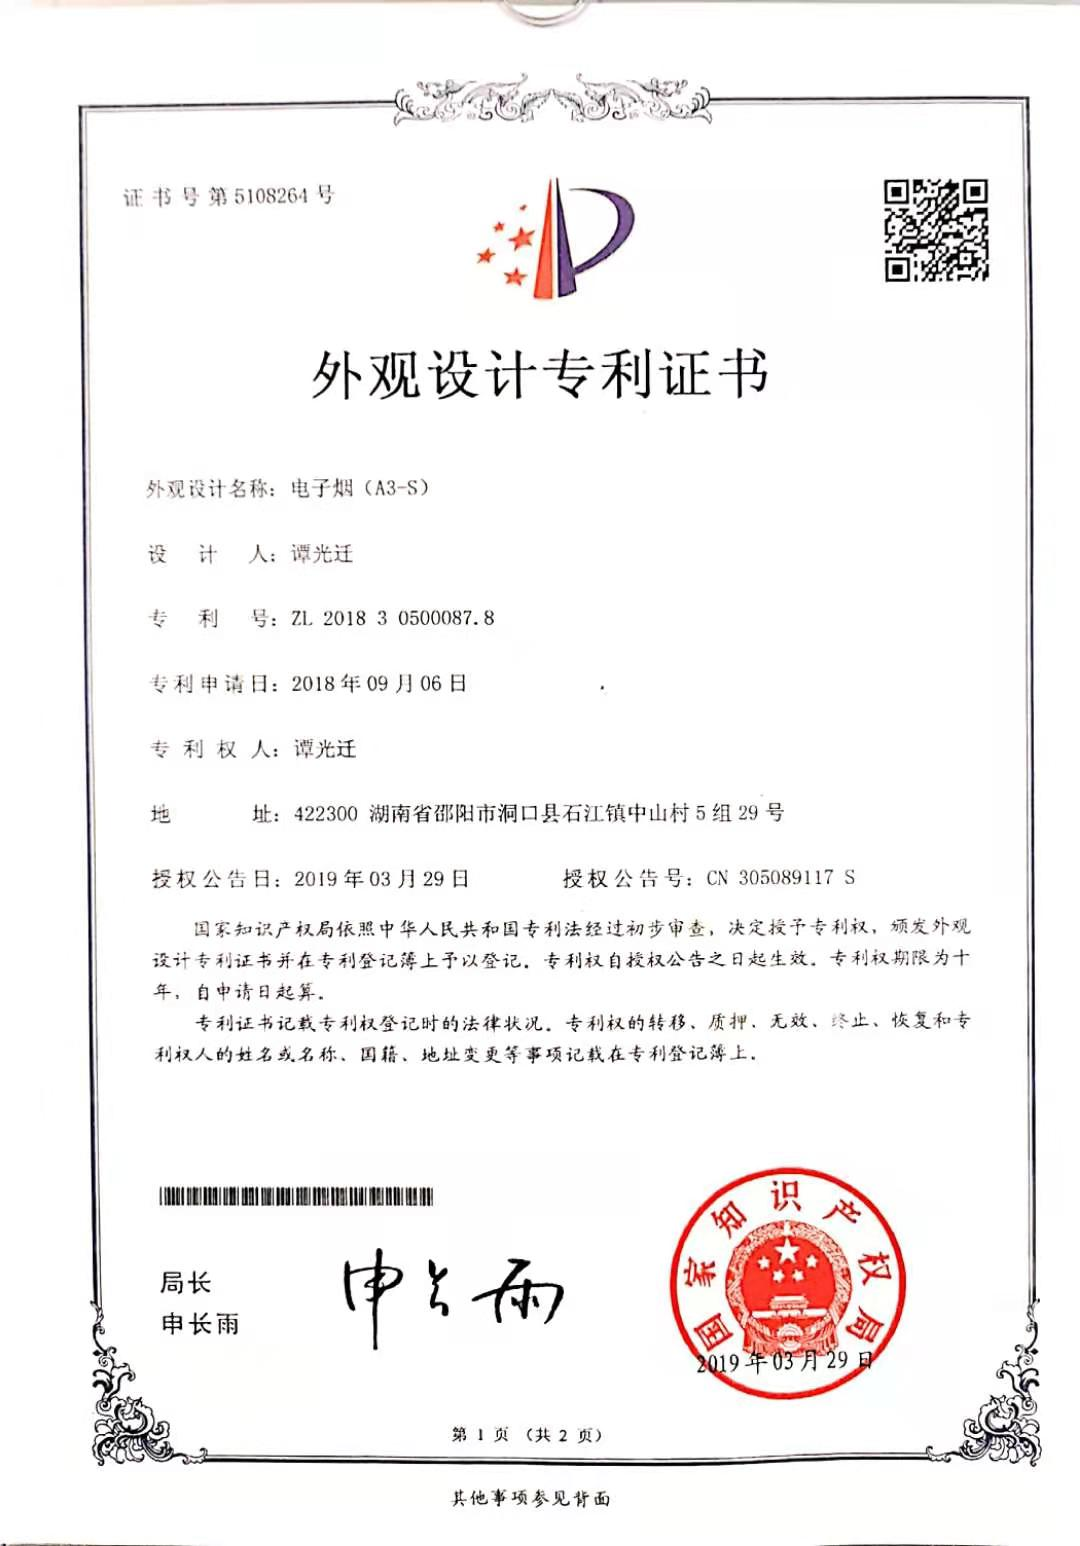 Appearance patent certificate